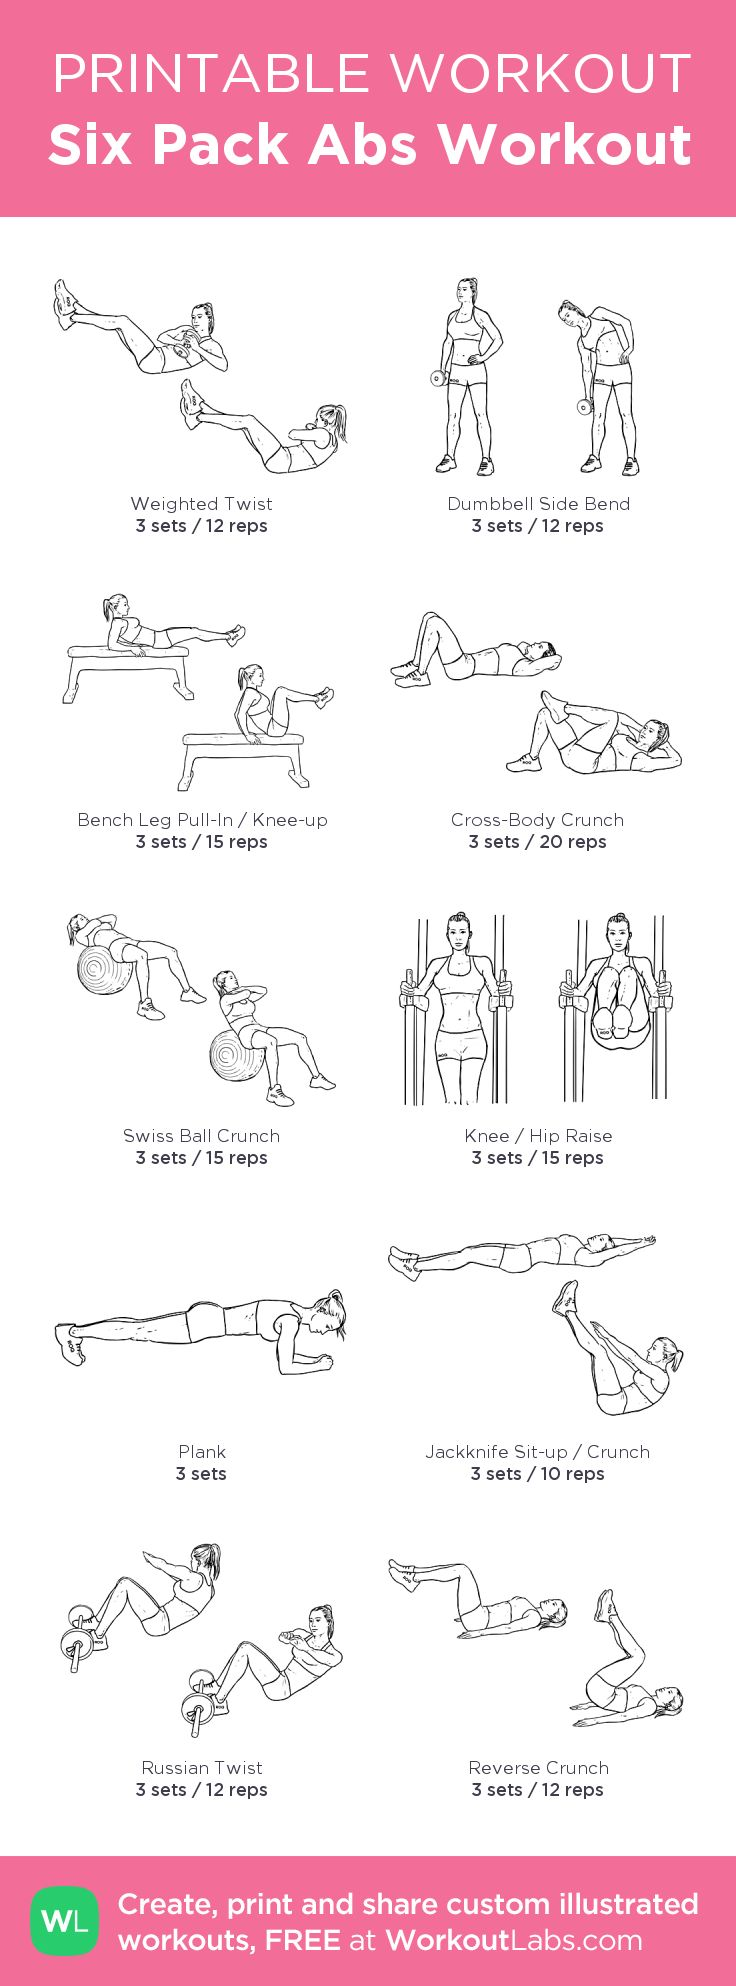 This is a picture of Revered Printable Ab Workouts